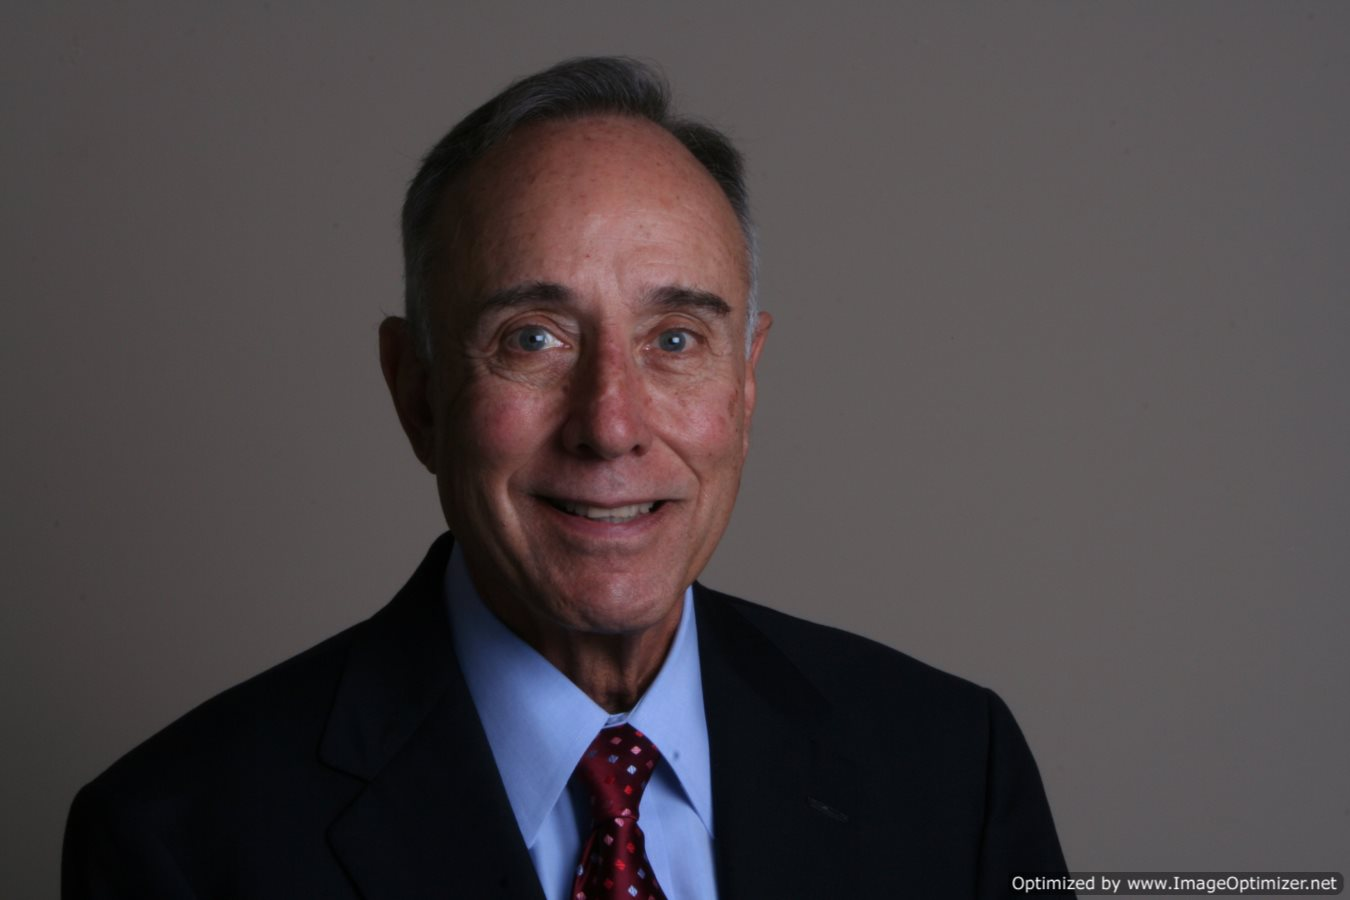 Former State Attorney and Practicing Criminal Defense Attorney: Harry Shorstein